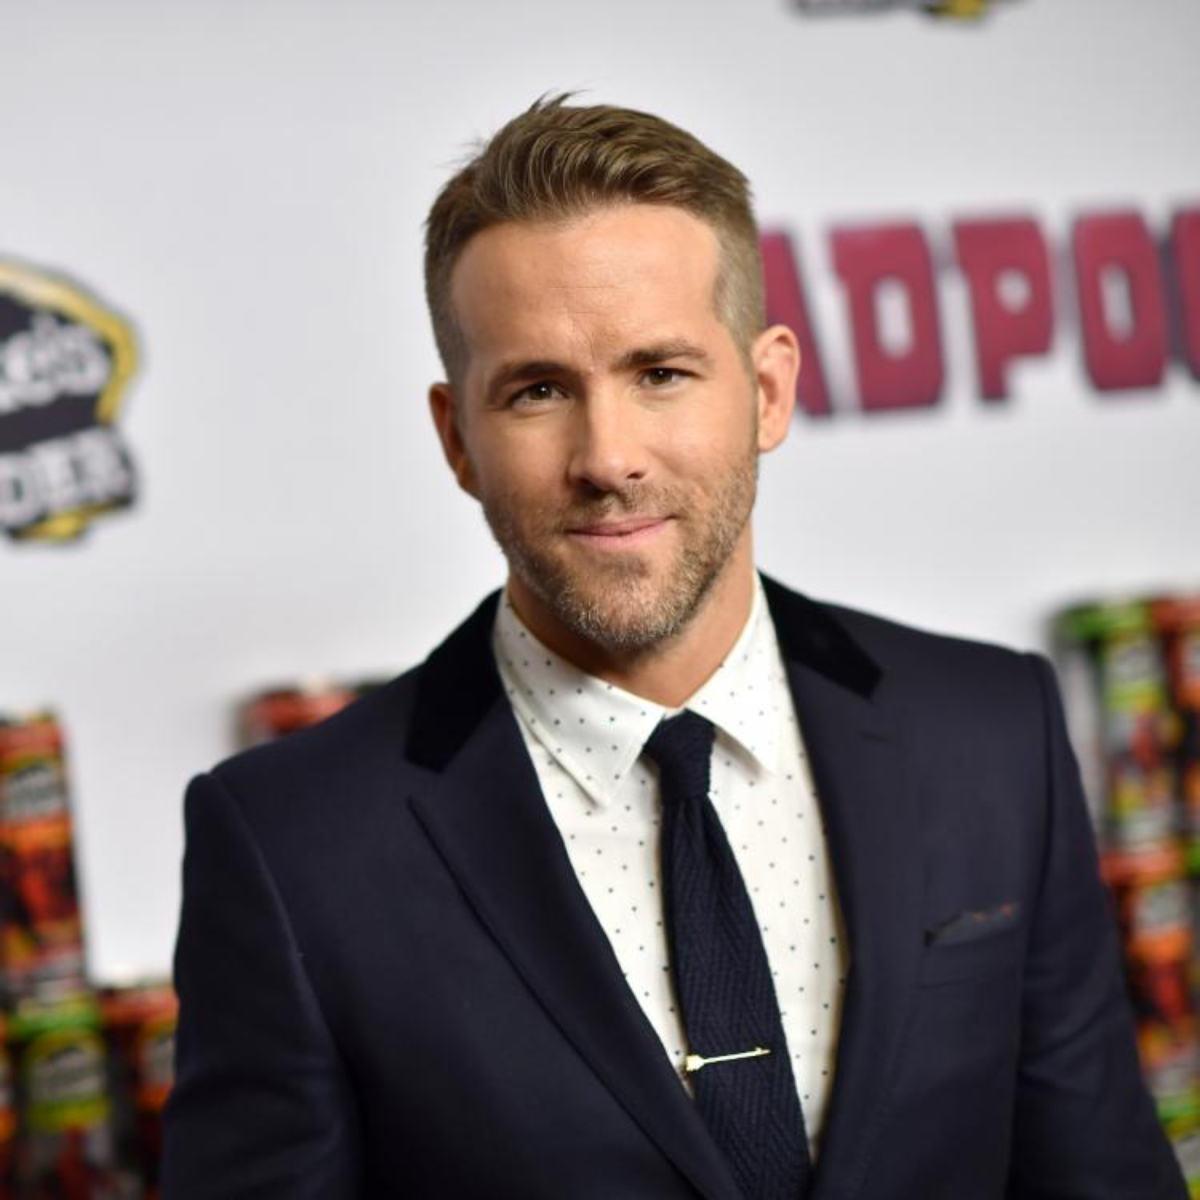 Deadpool star Ryan Reynolds says THIS about India's contribution to cinema; Find Out